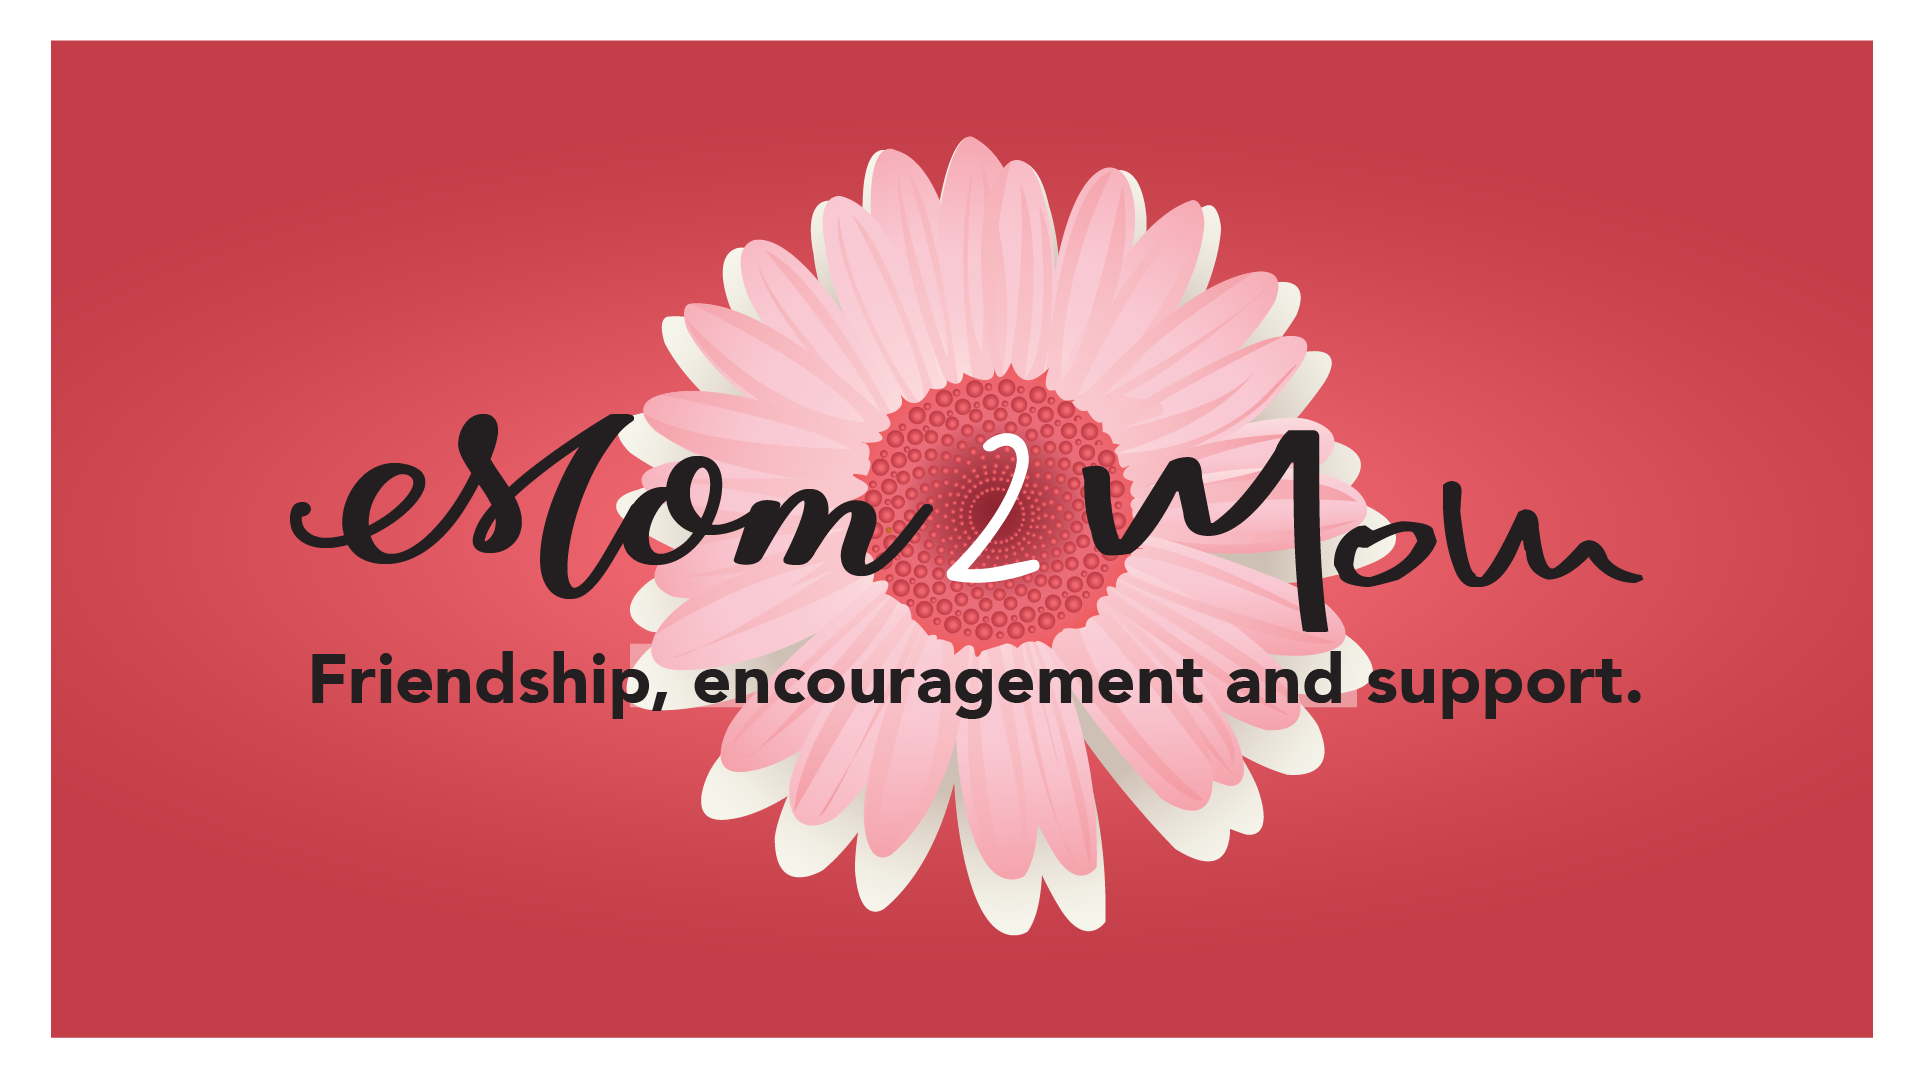 http://www.wieuca.org/uploads/Mom-2-Mom-background.png